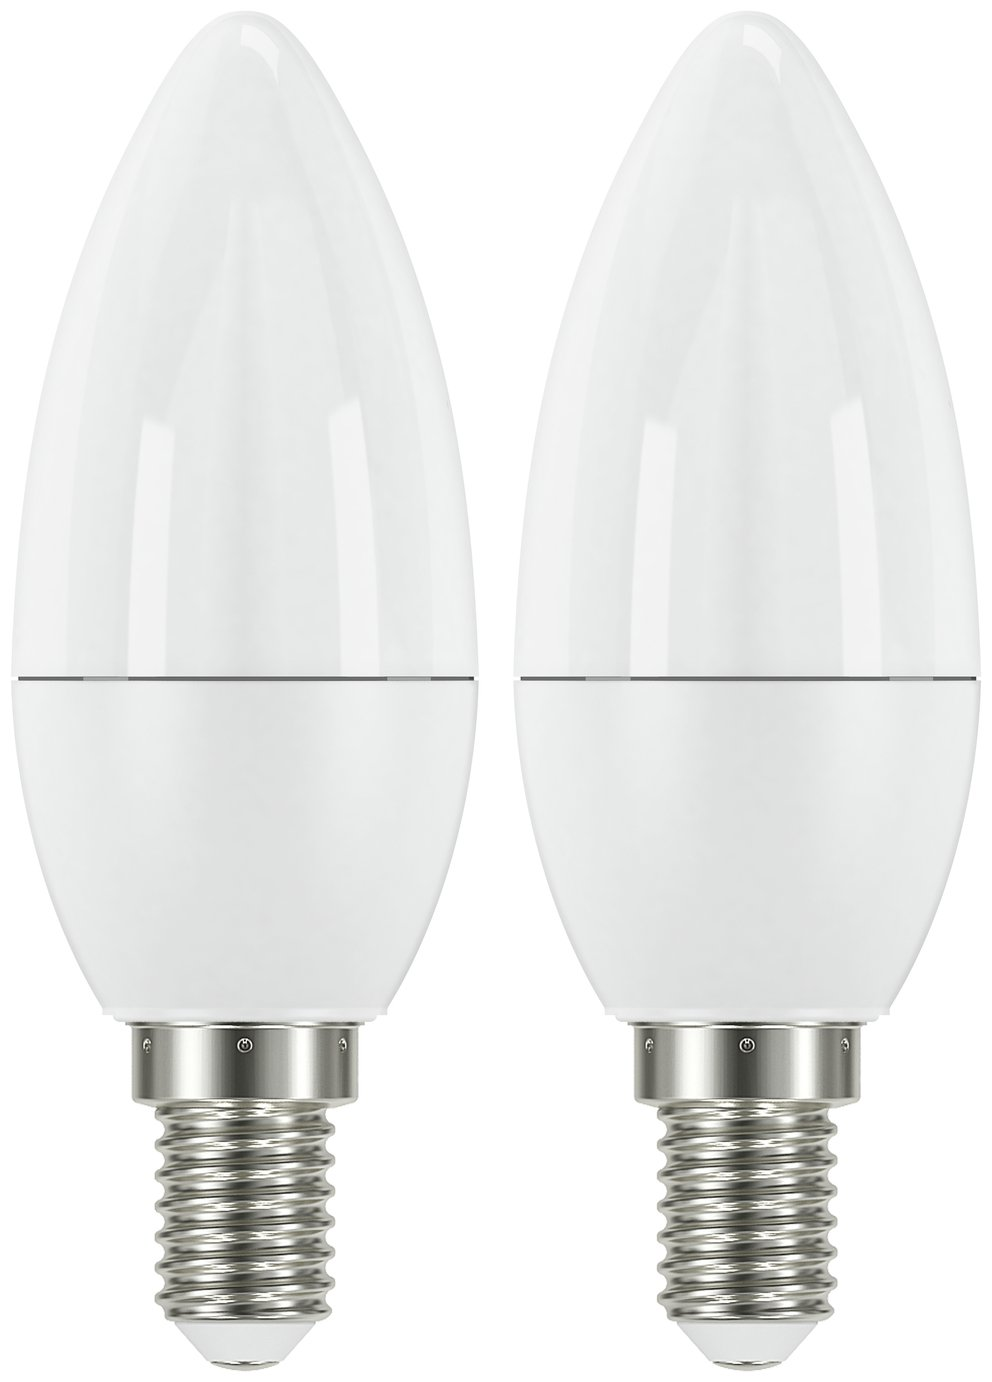 Argos Home 3W LED SES Frosted Candle Light Bulb - 2 Pack